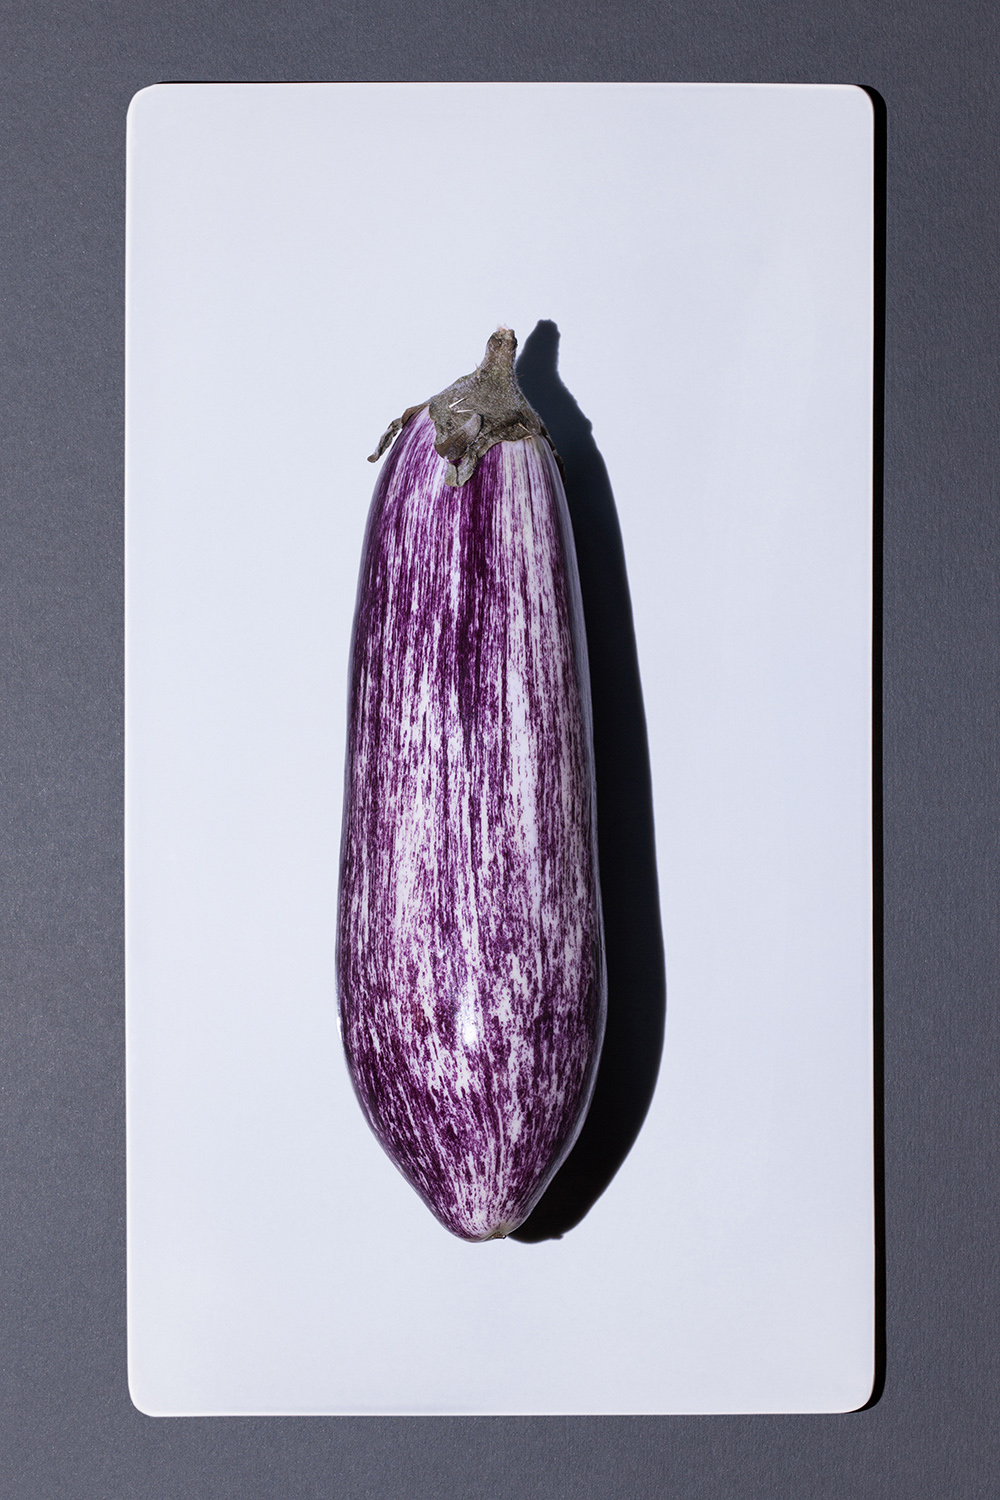 aubergine_striped_2154.jpg